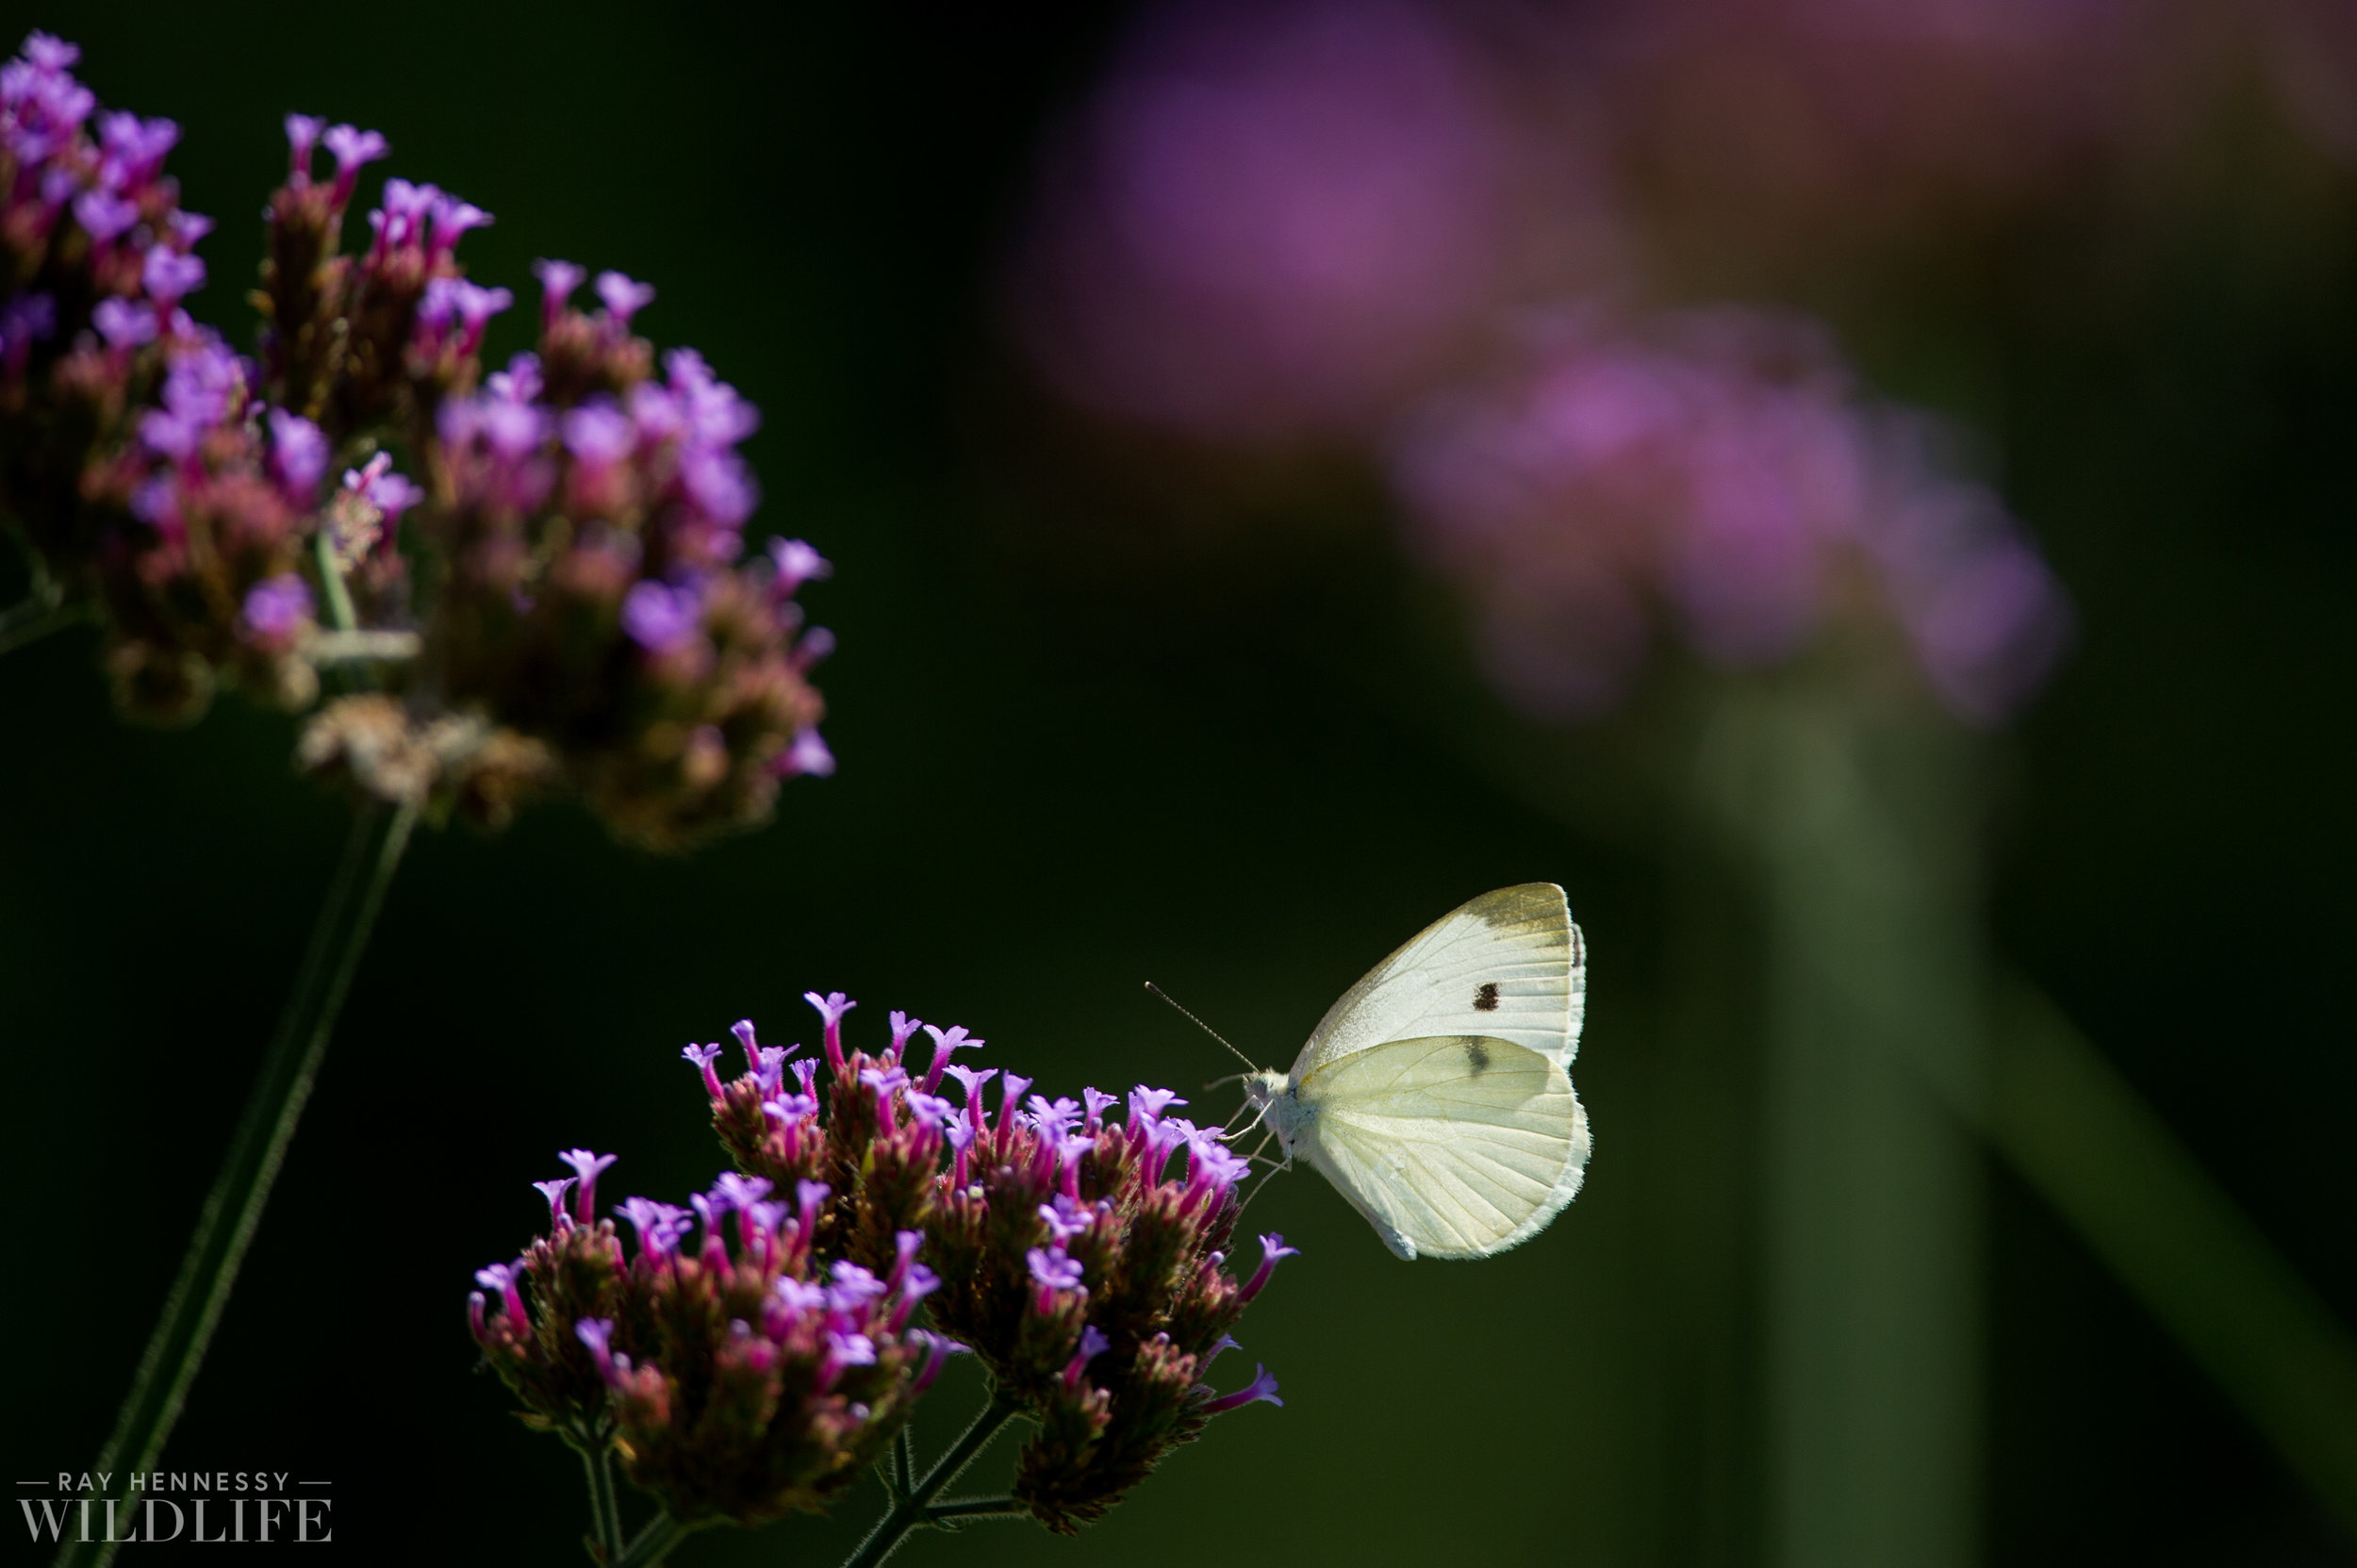 011_butterflies and insects.jpg